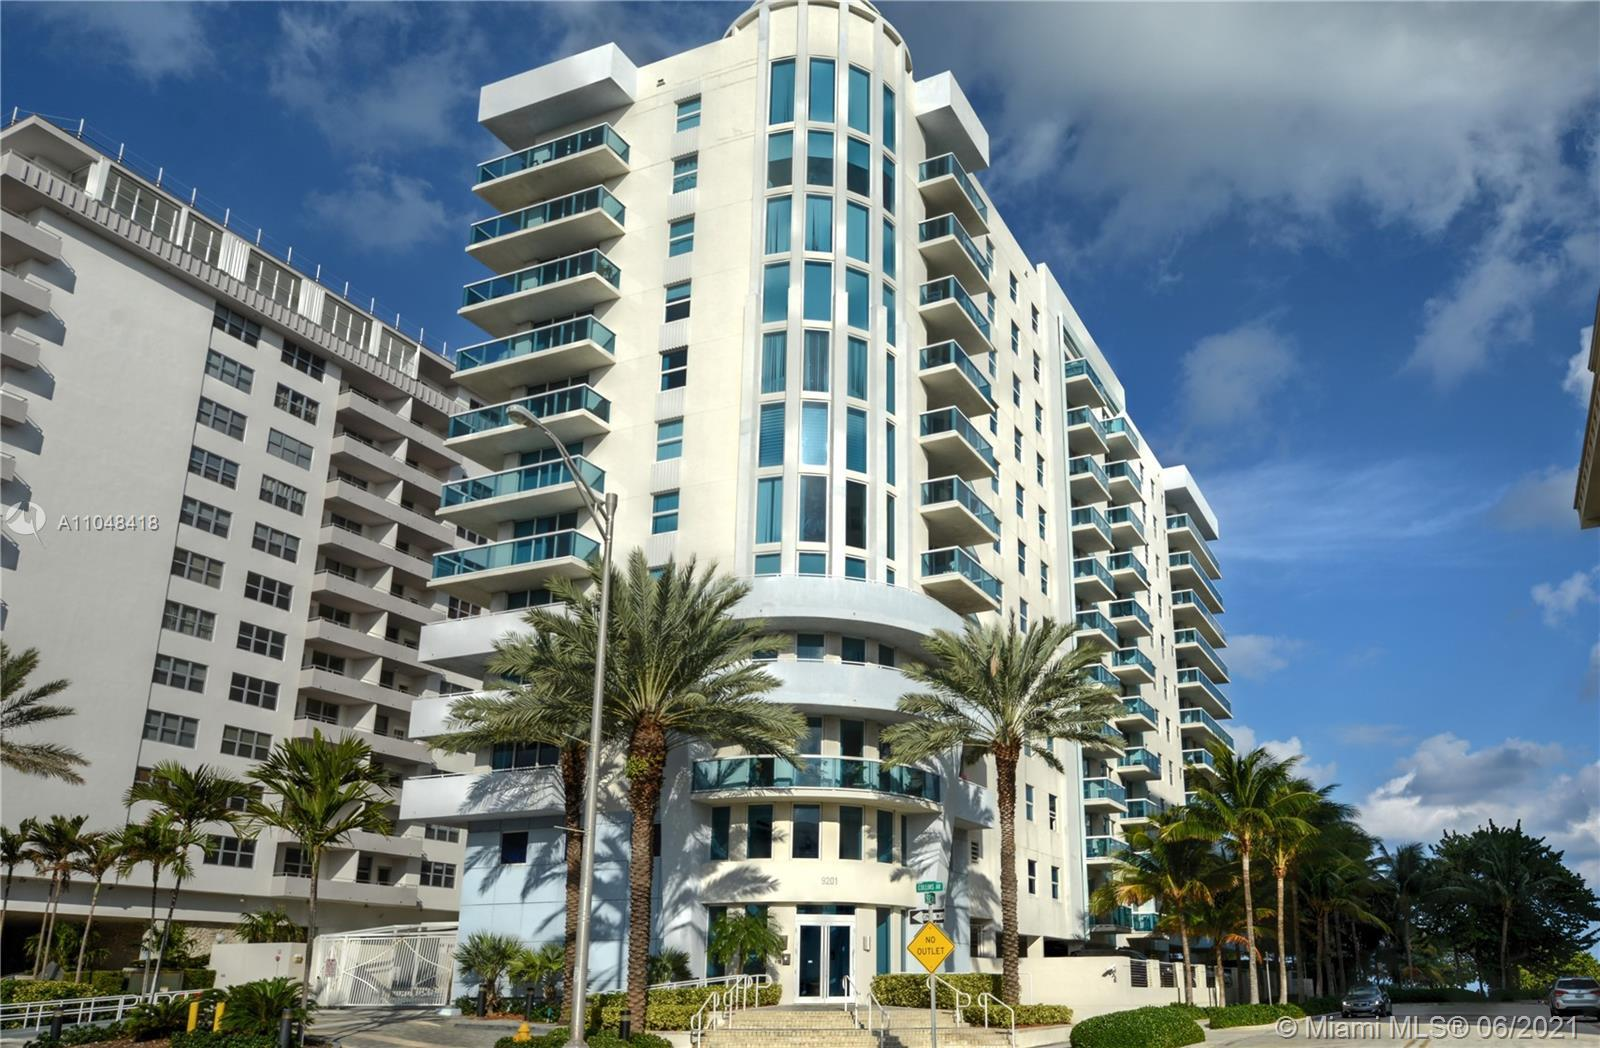 Amazing apartment w ocean view, all furniture best location.